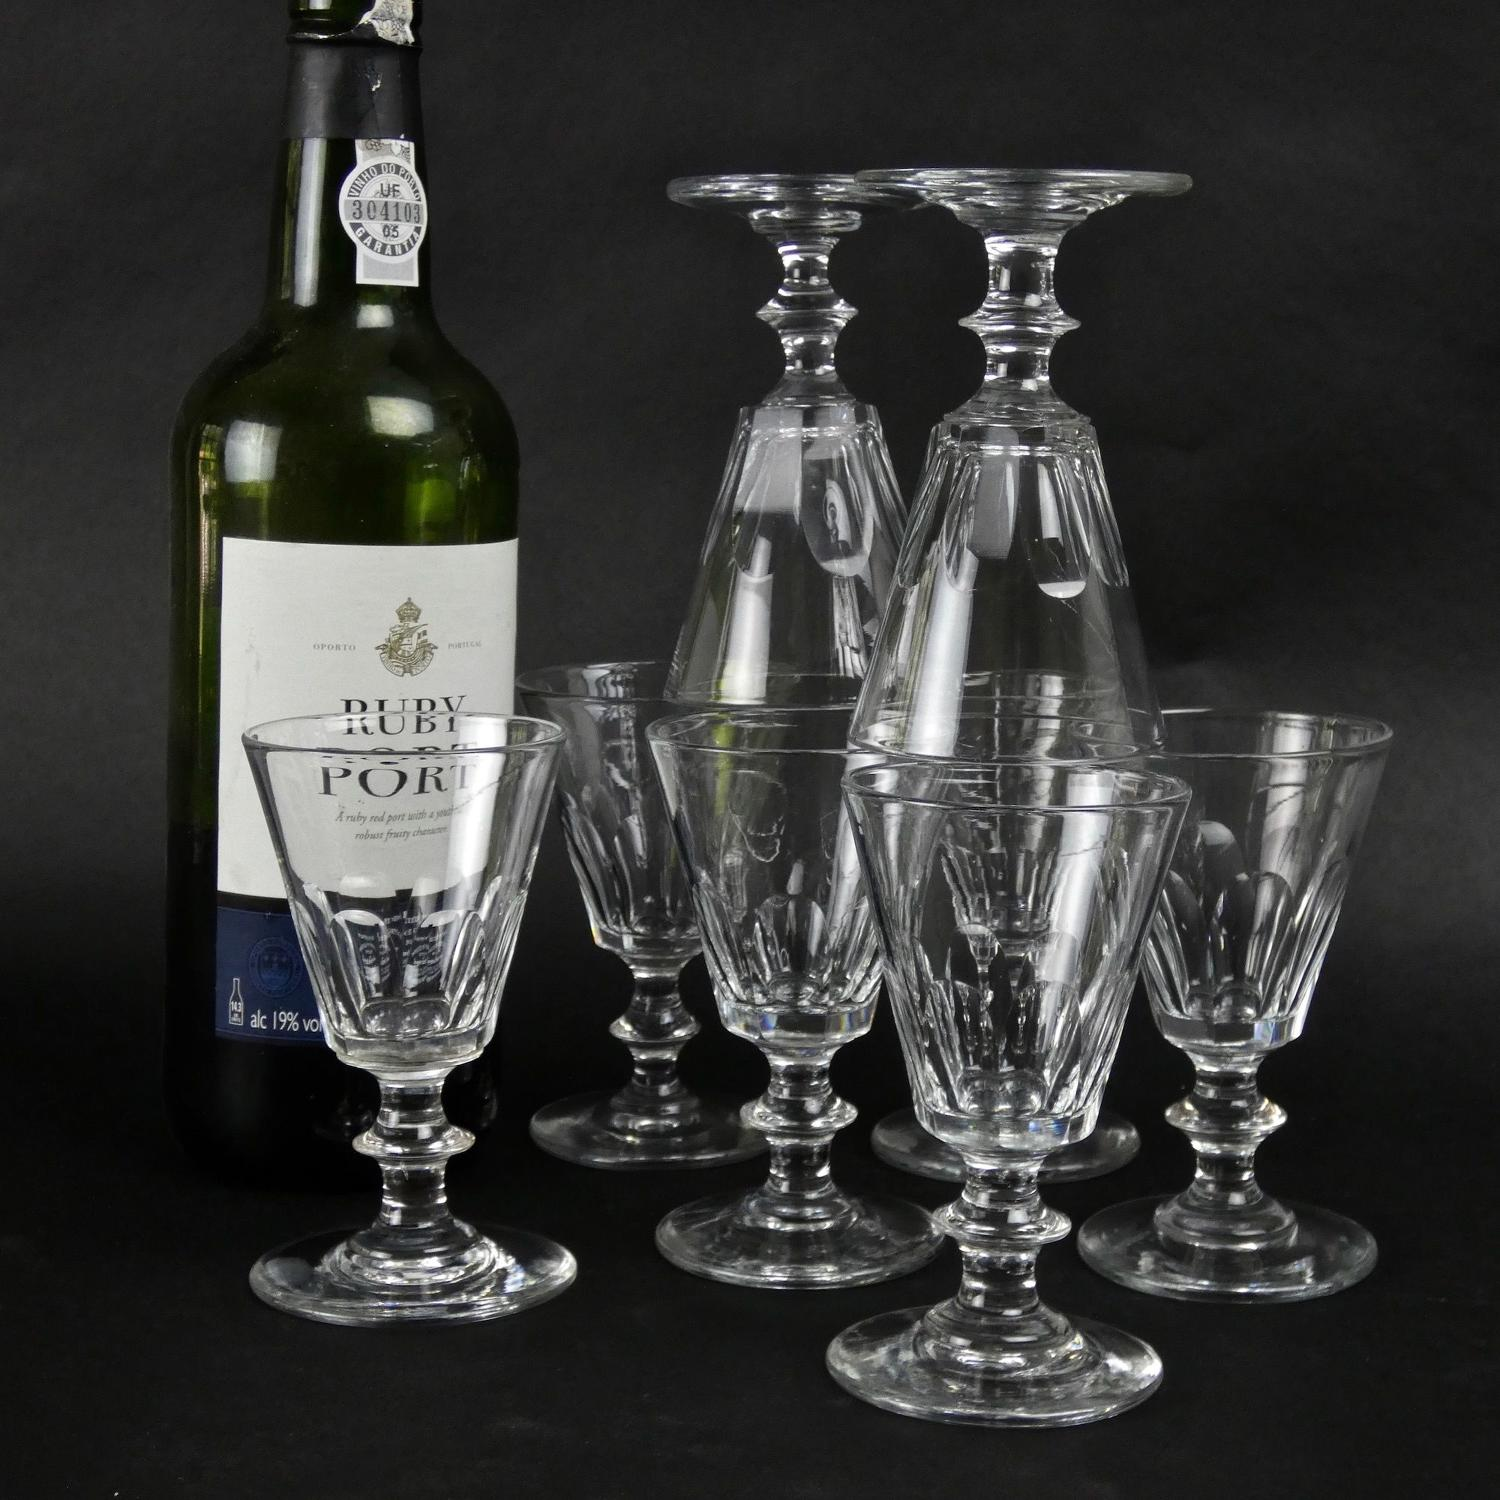 Set of 19th century port glasses